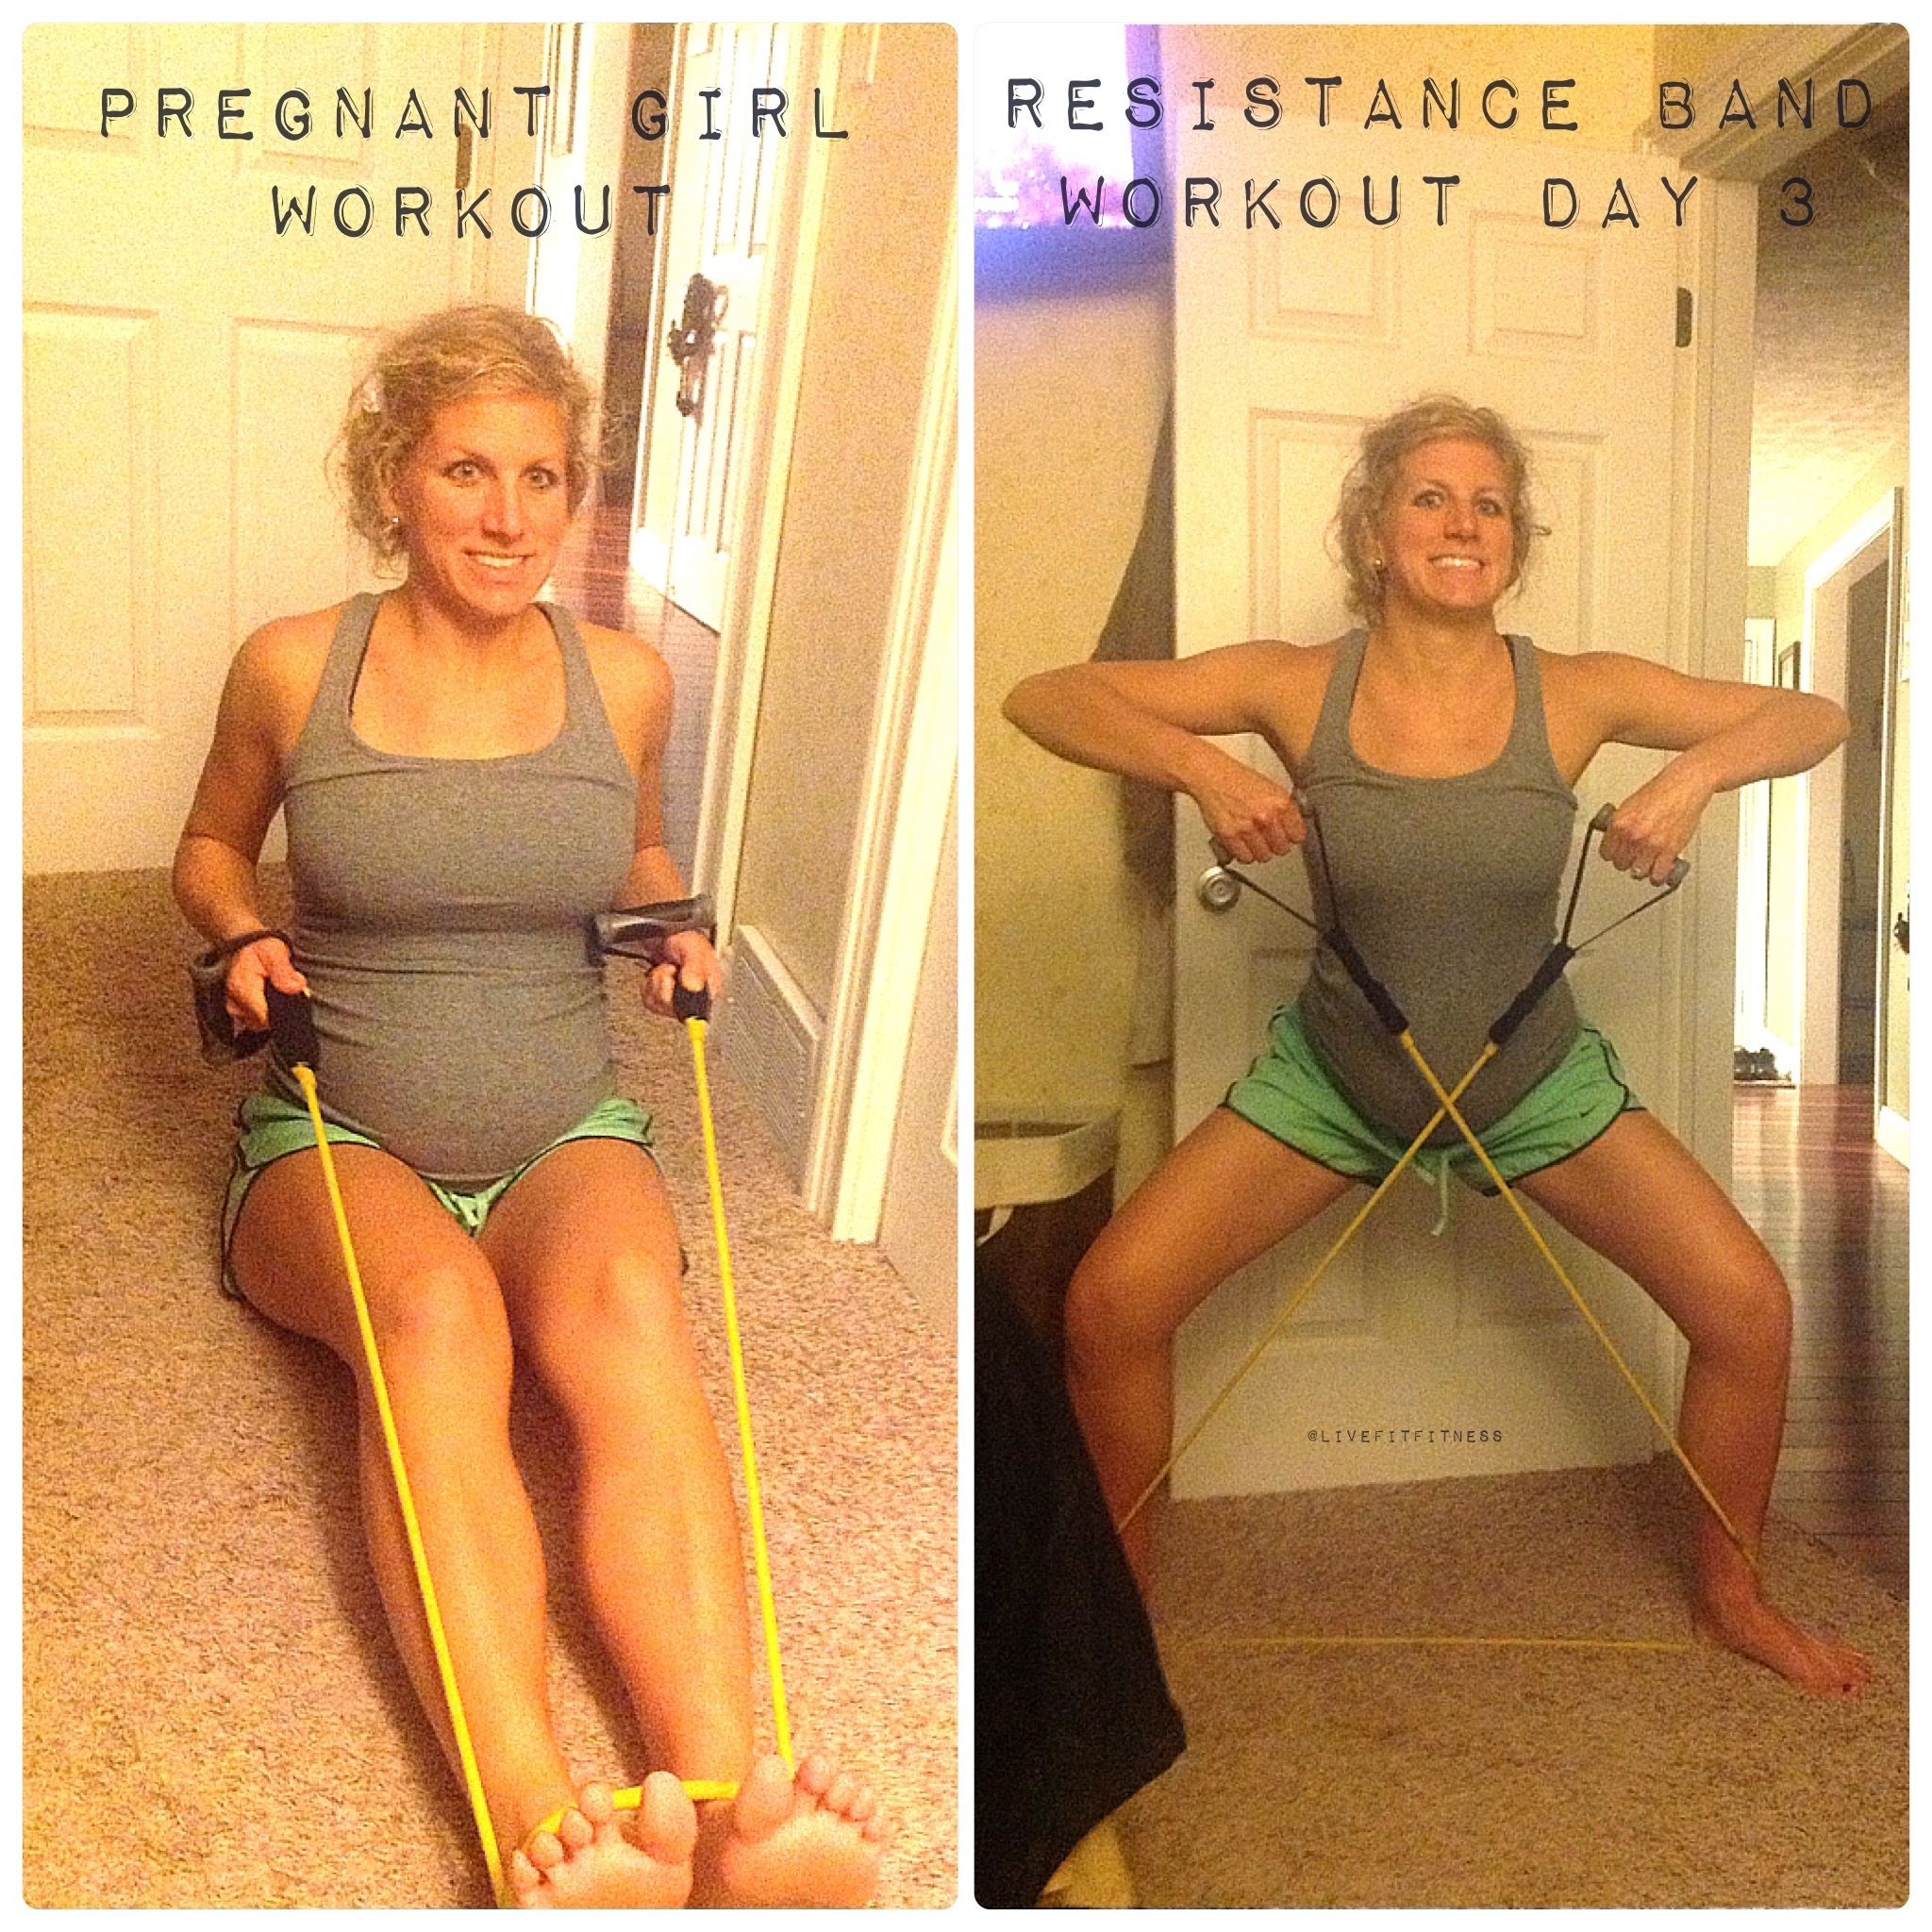 Pregnant Girls Resistance Band Workout